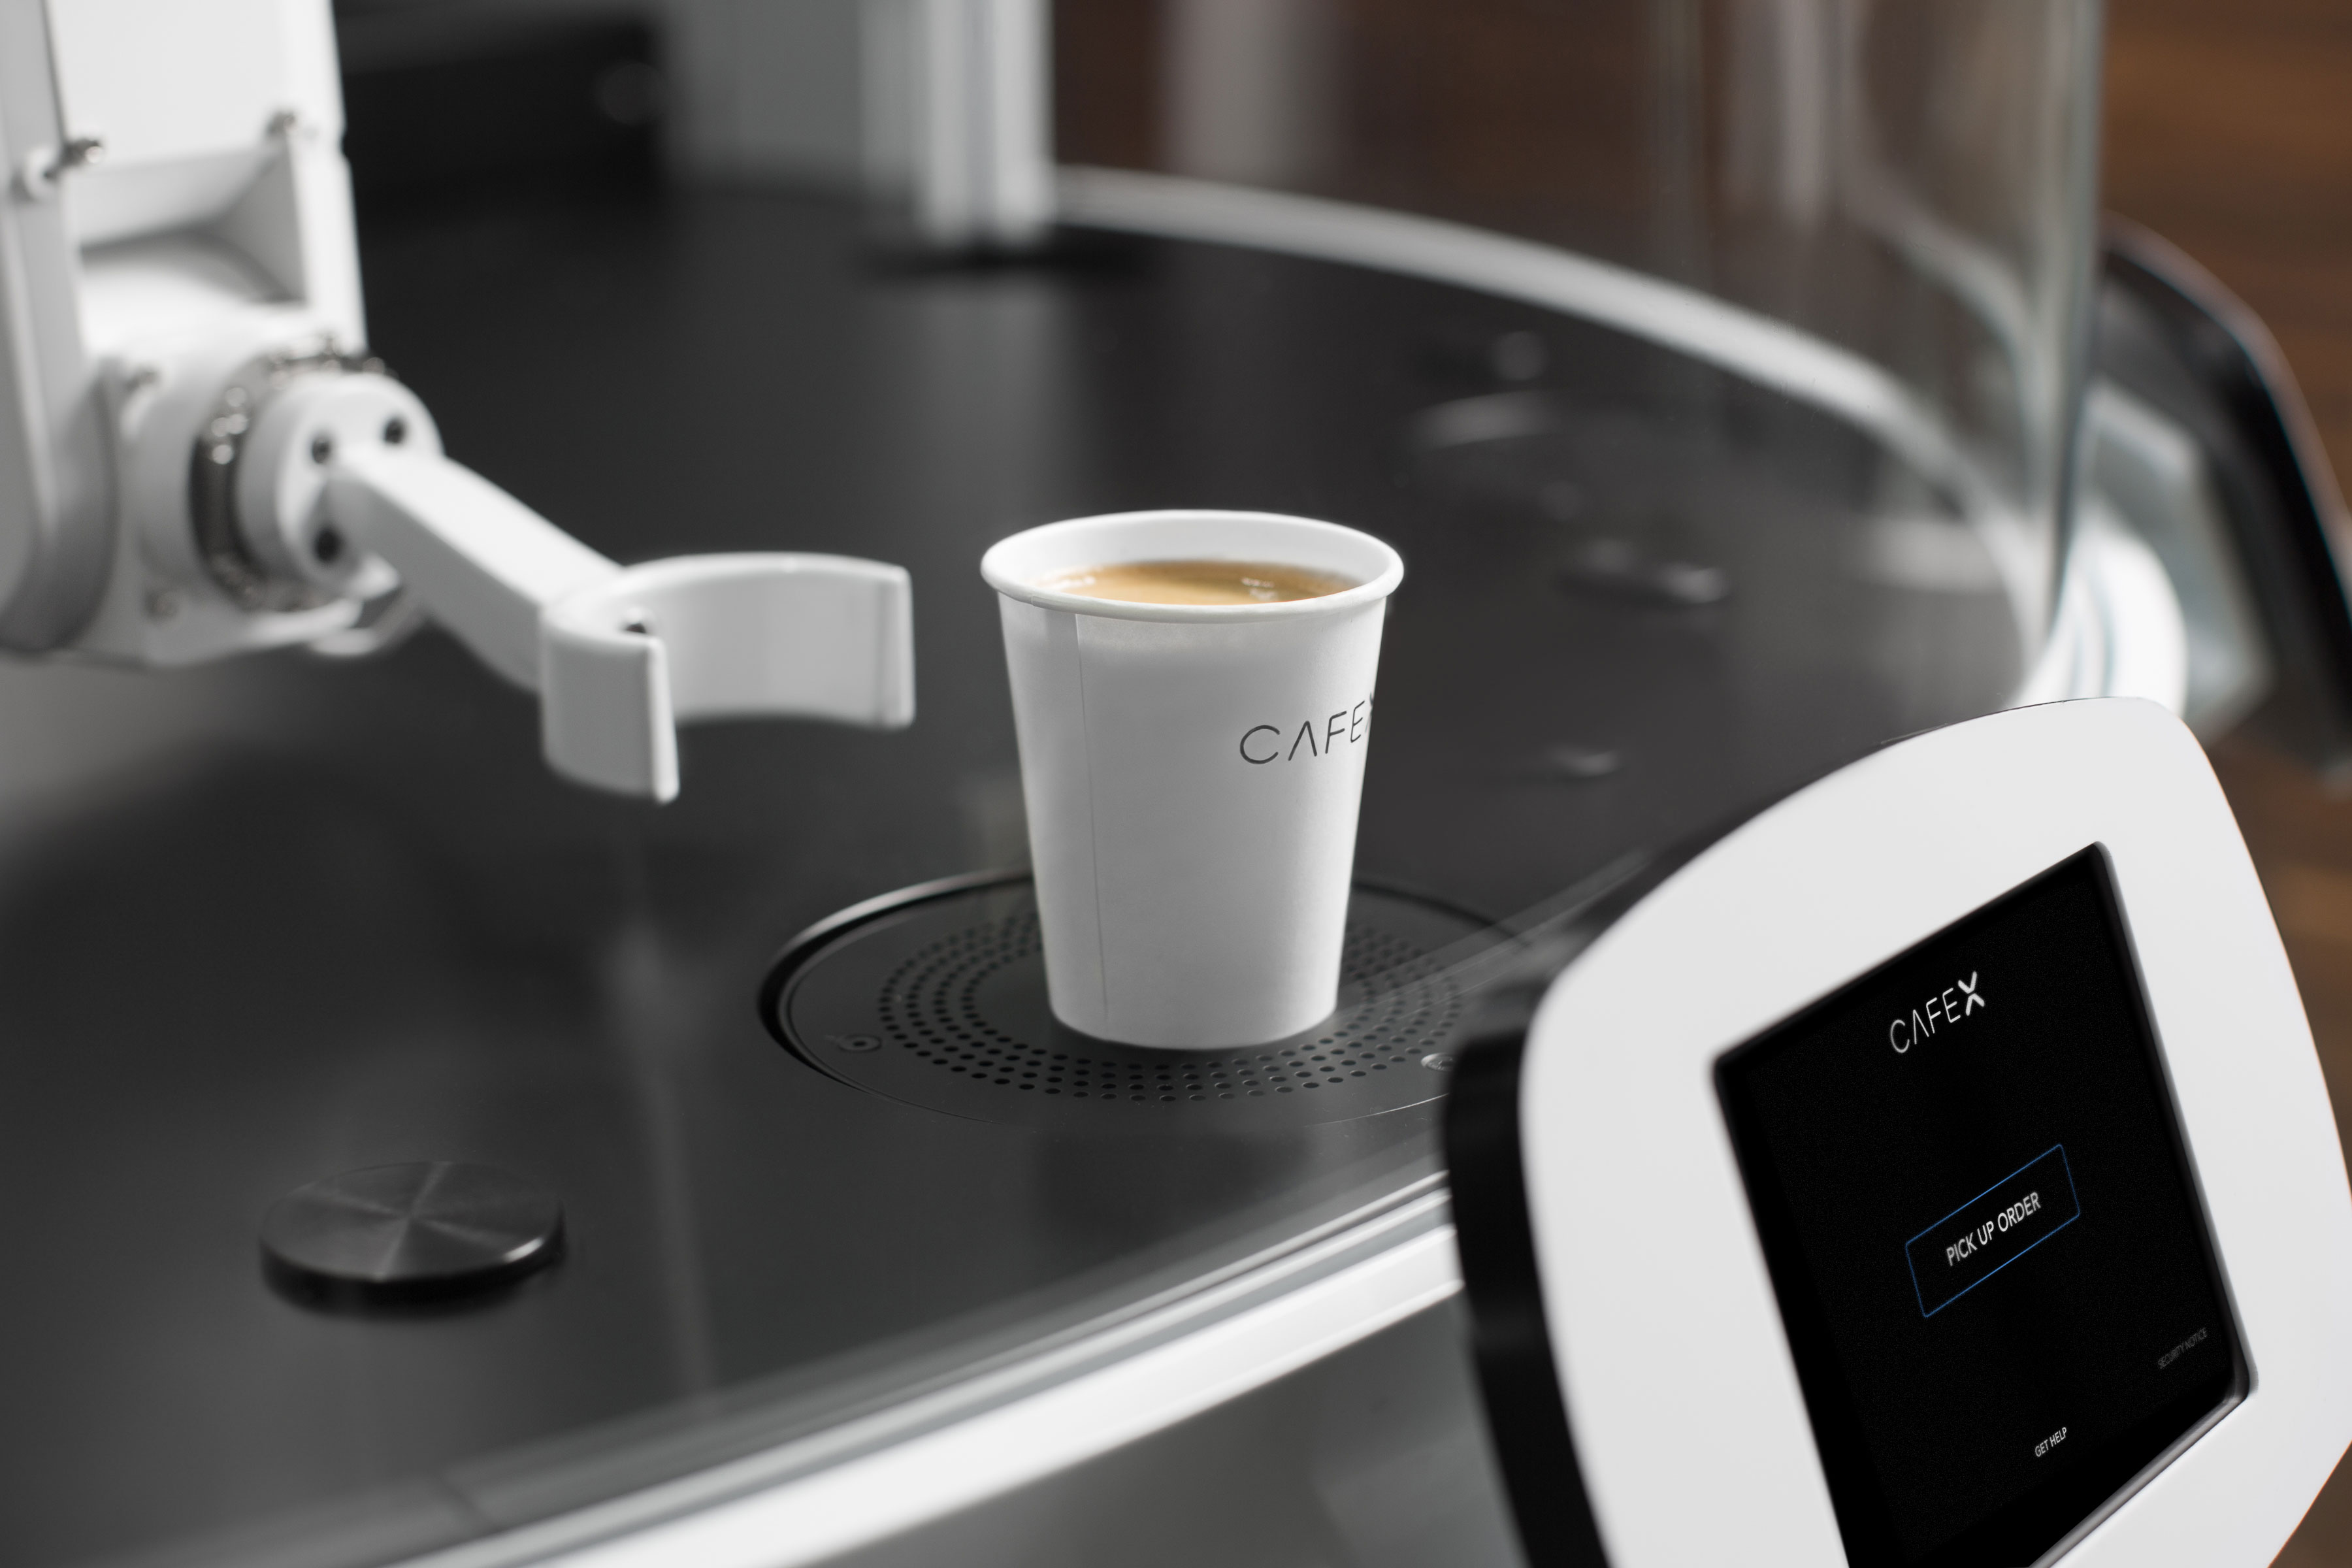 Cafe X opens in San Francisco, bringing robots to the coffee shop